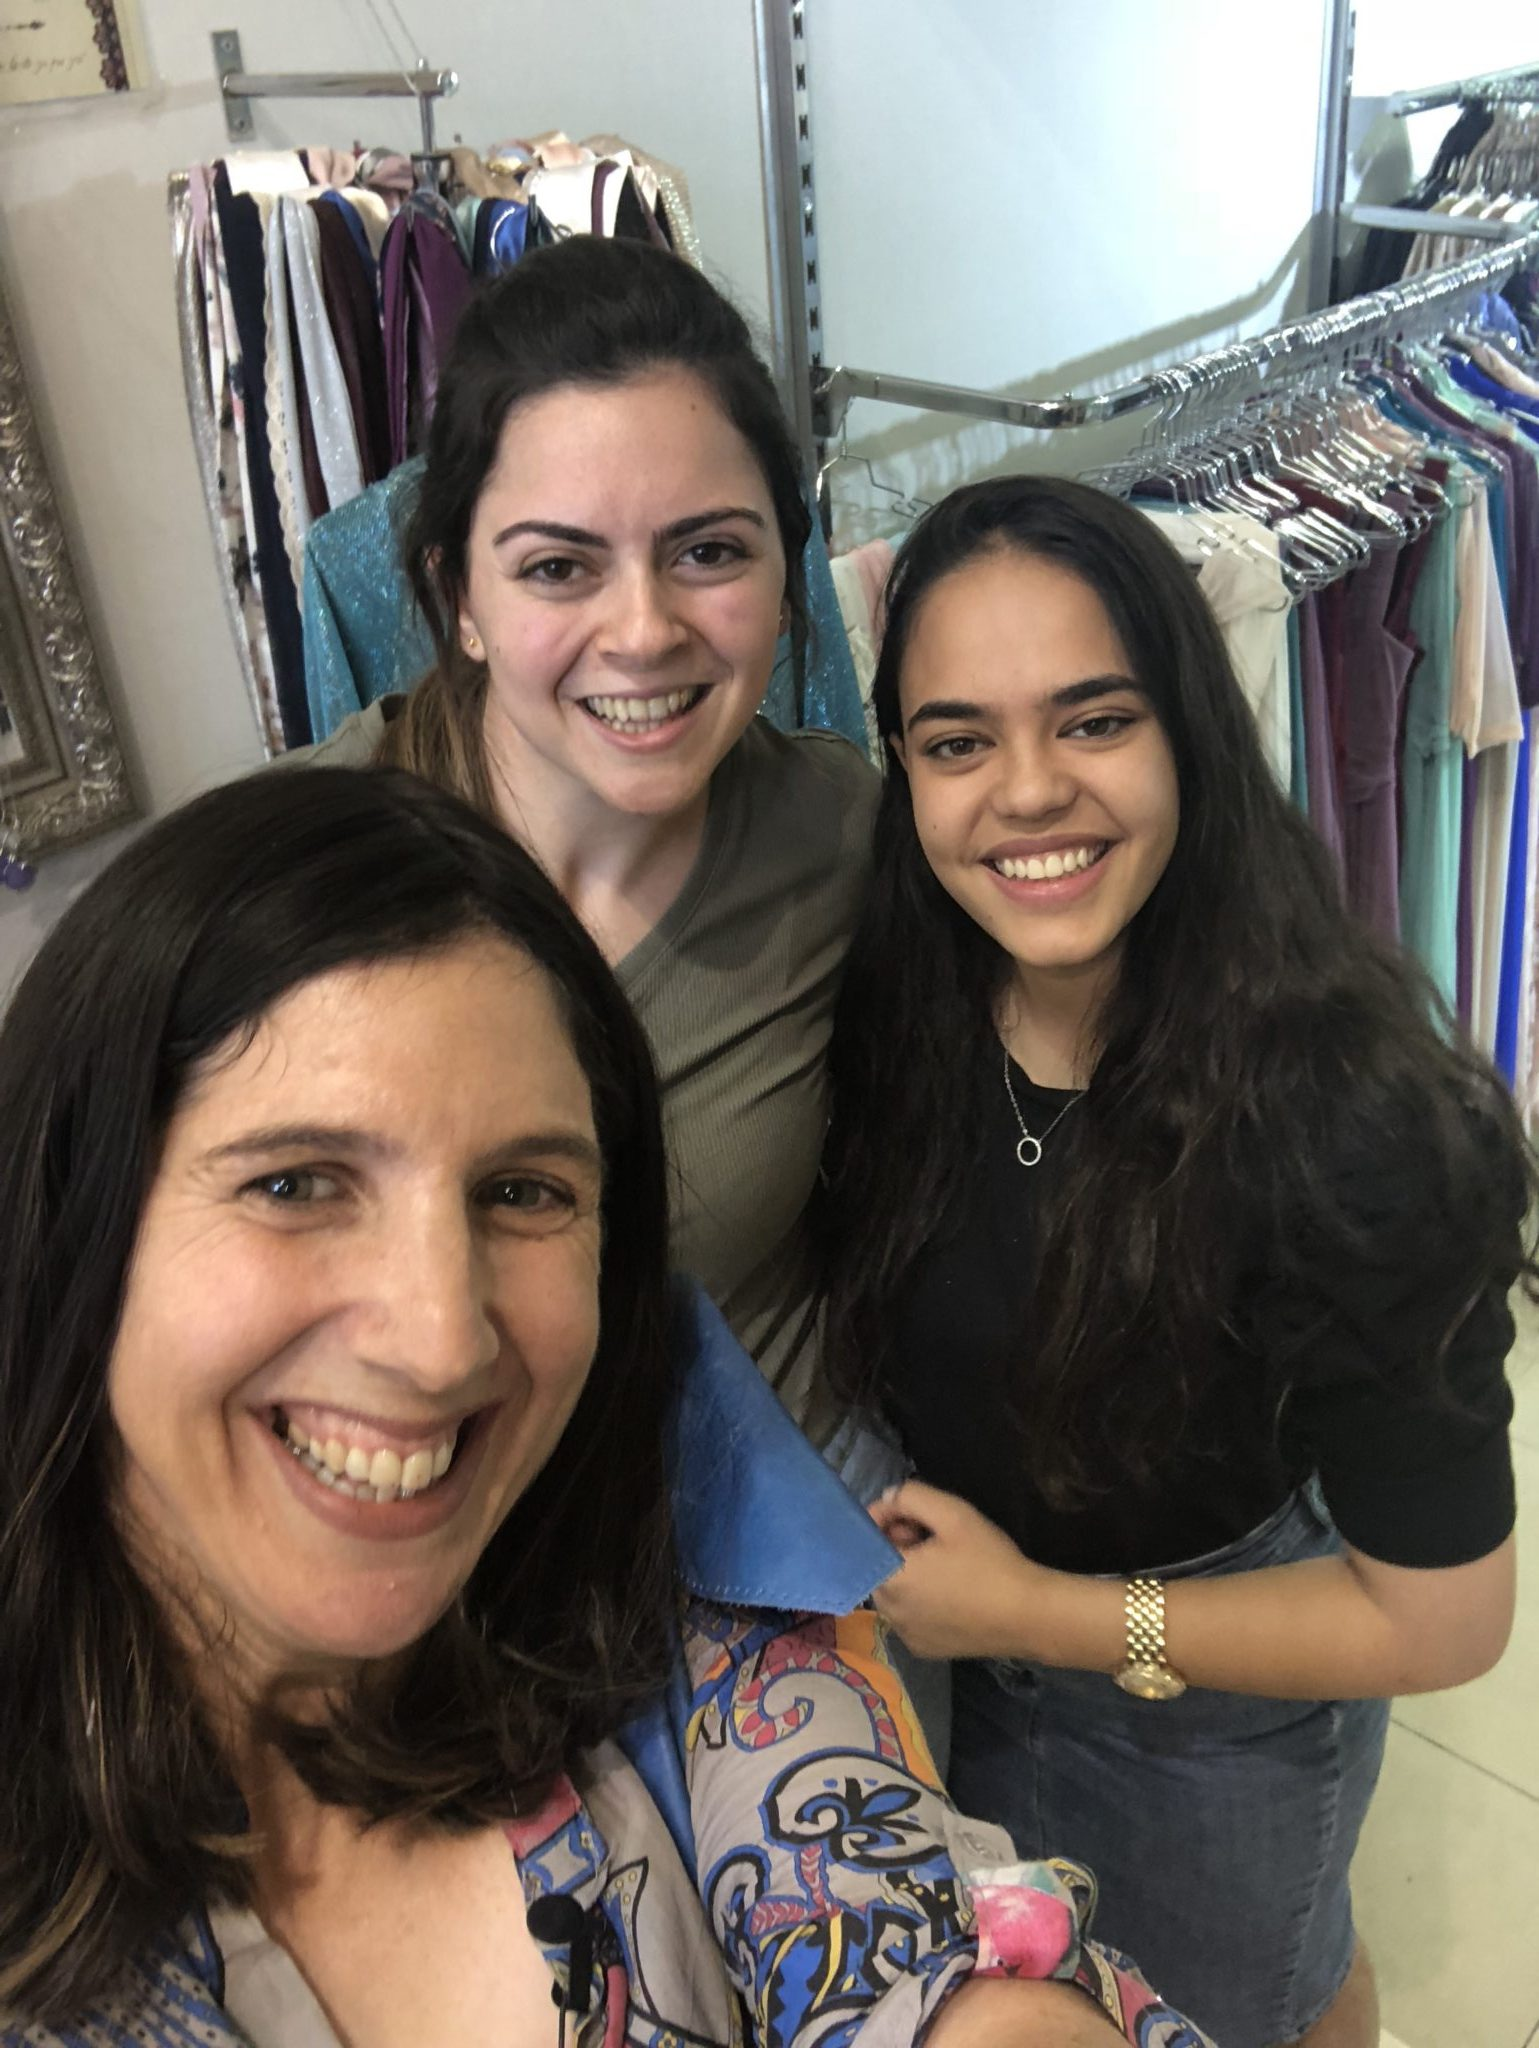 Bat Mitzvah Dress Shopping with High Energy Mom